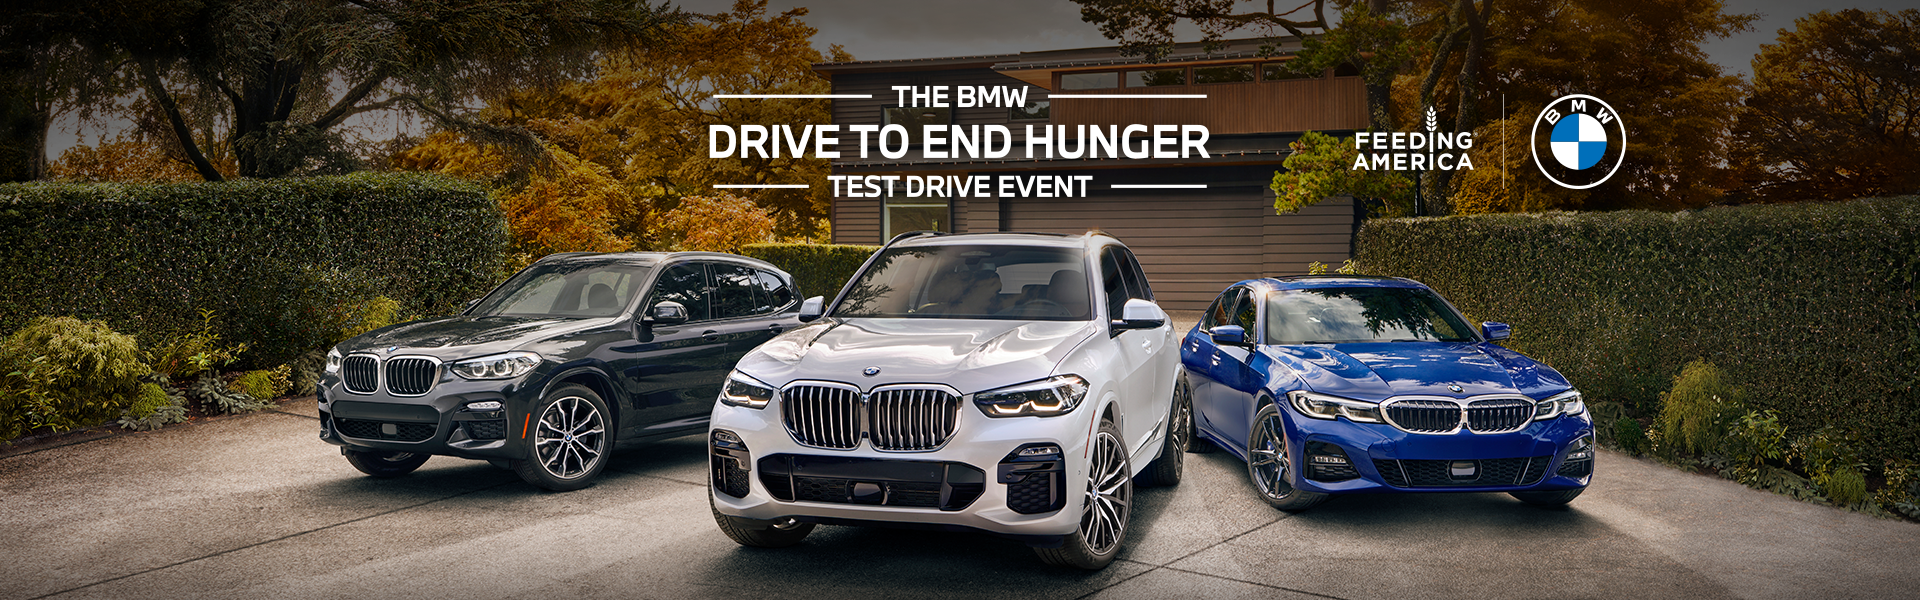 The BMW Drive to End Hunger Test Drive Event